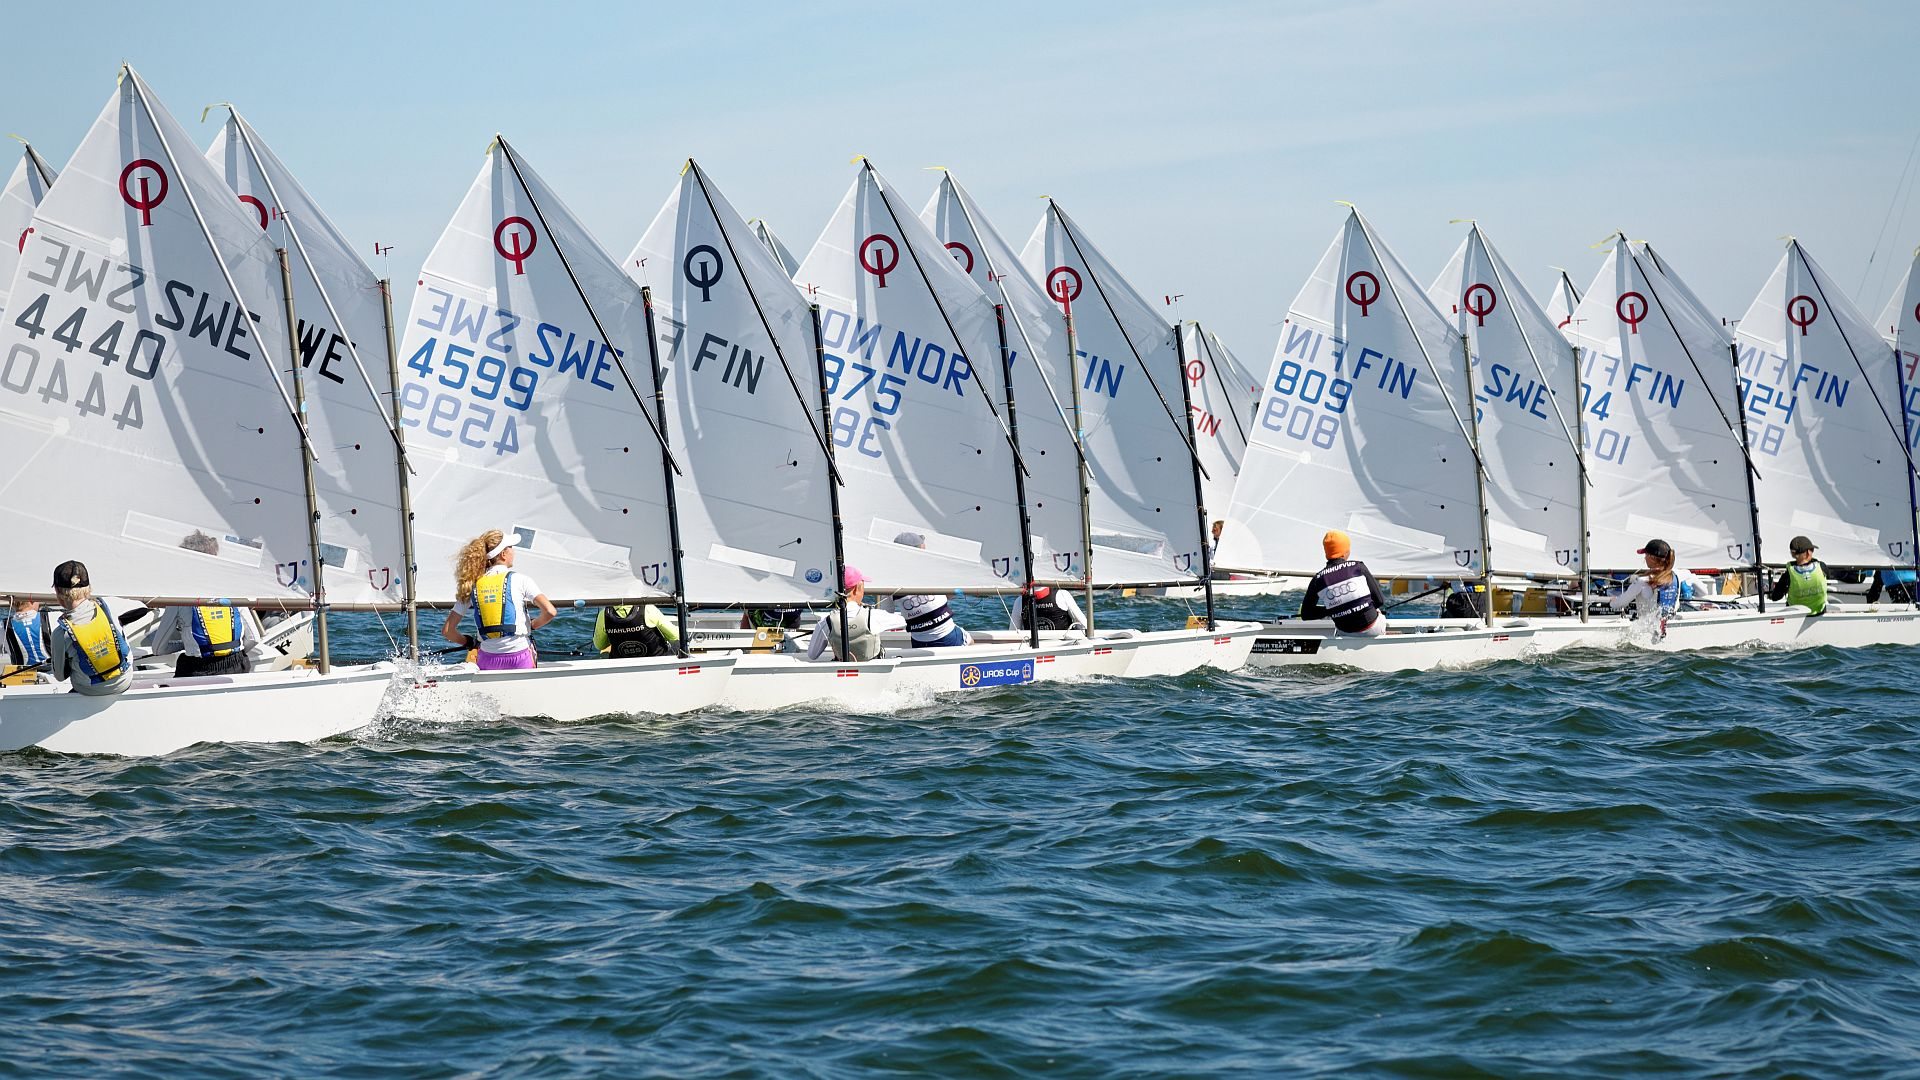 Three days of sailing in sunny weather at Esbo Segelförening, Pentala. Photos, where tried to catch every single sailor, are from Sunday. Gold fleet (61 photos) Silver fleet (90 photos) Cadets (80 photos) Results: Gold/Silver fleetand Kadett